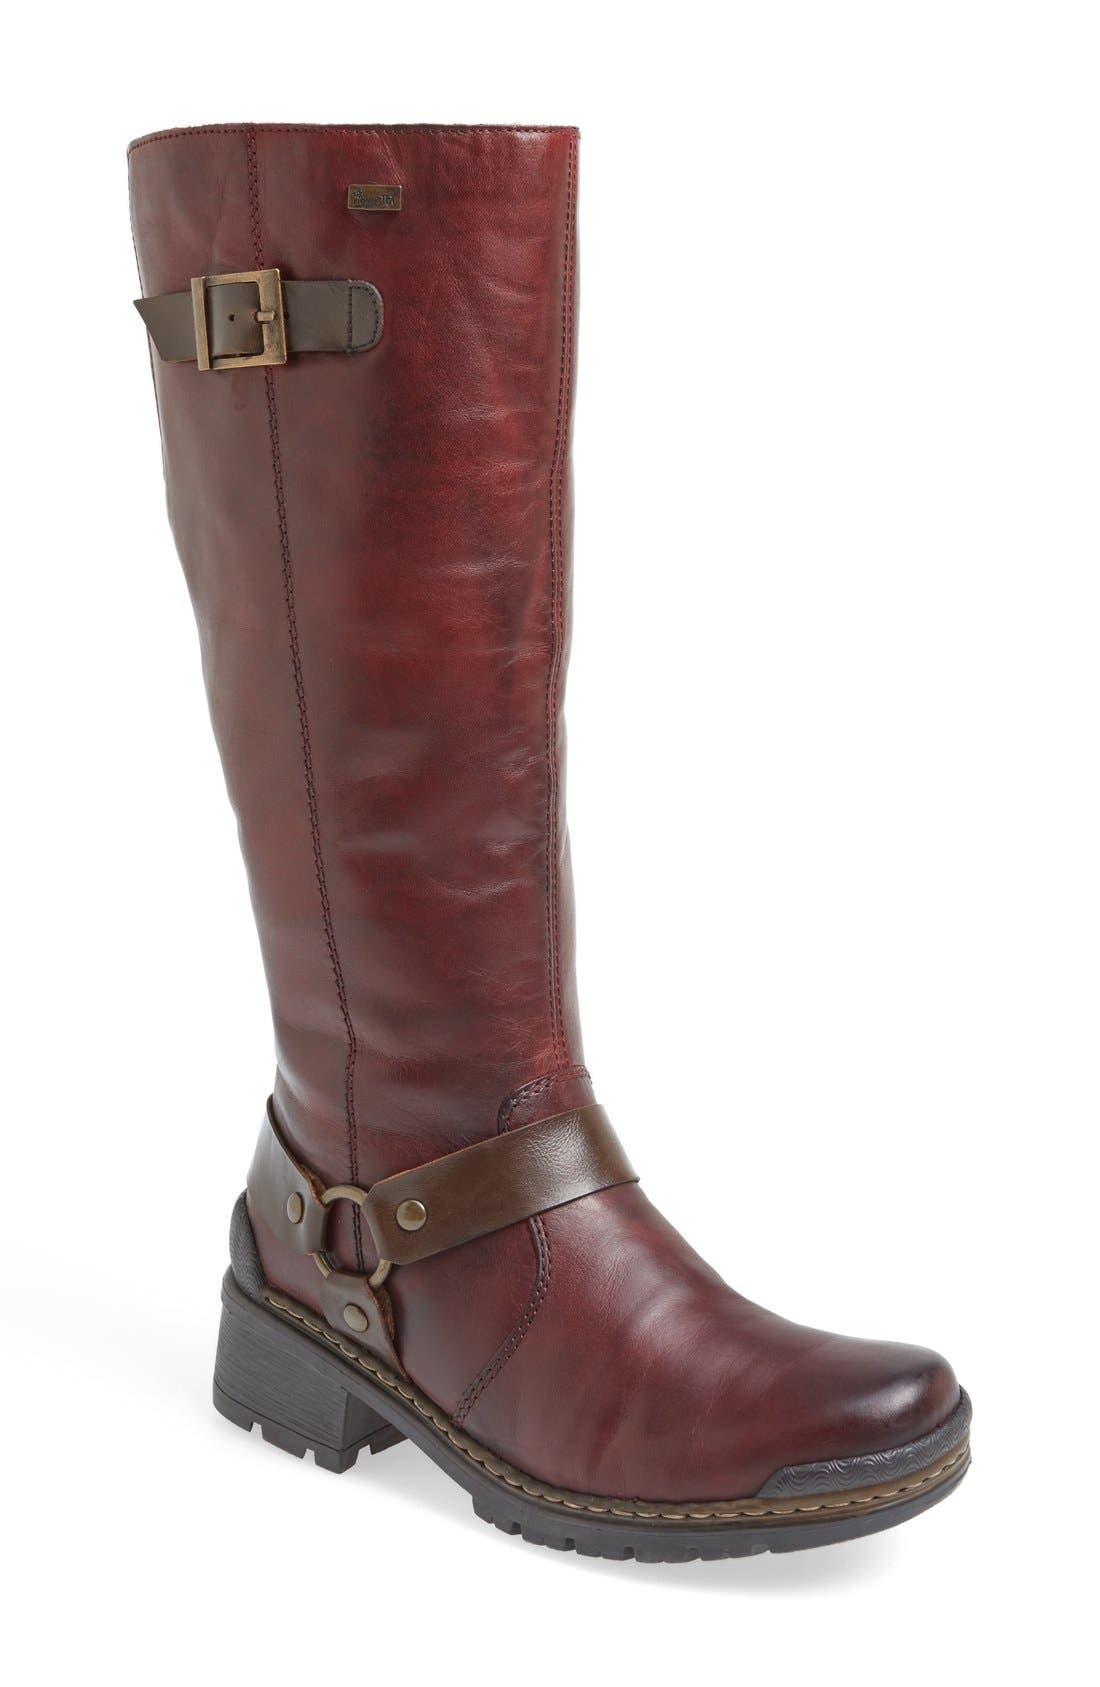 Alternate Image 1 Selected - Rieker Antistress 'Sybille 70' Riding Boot (Women)